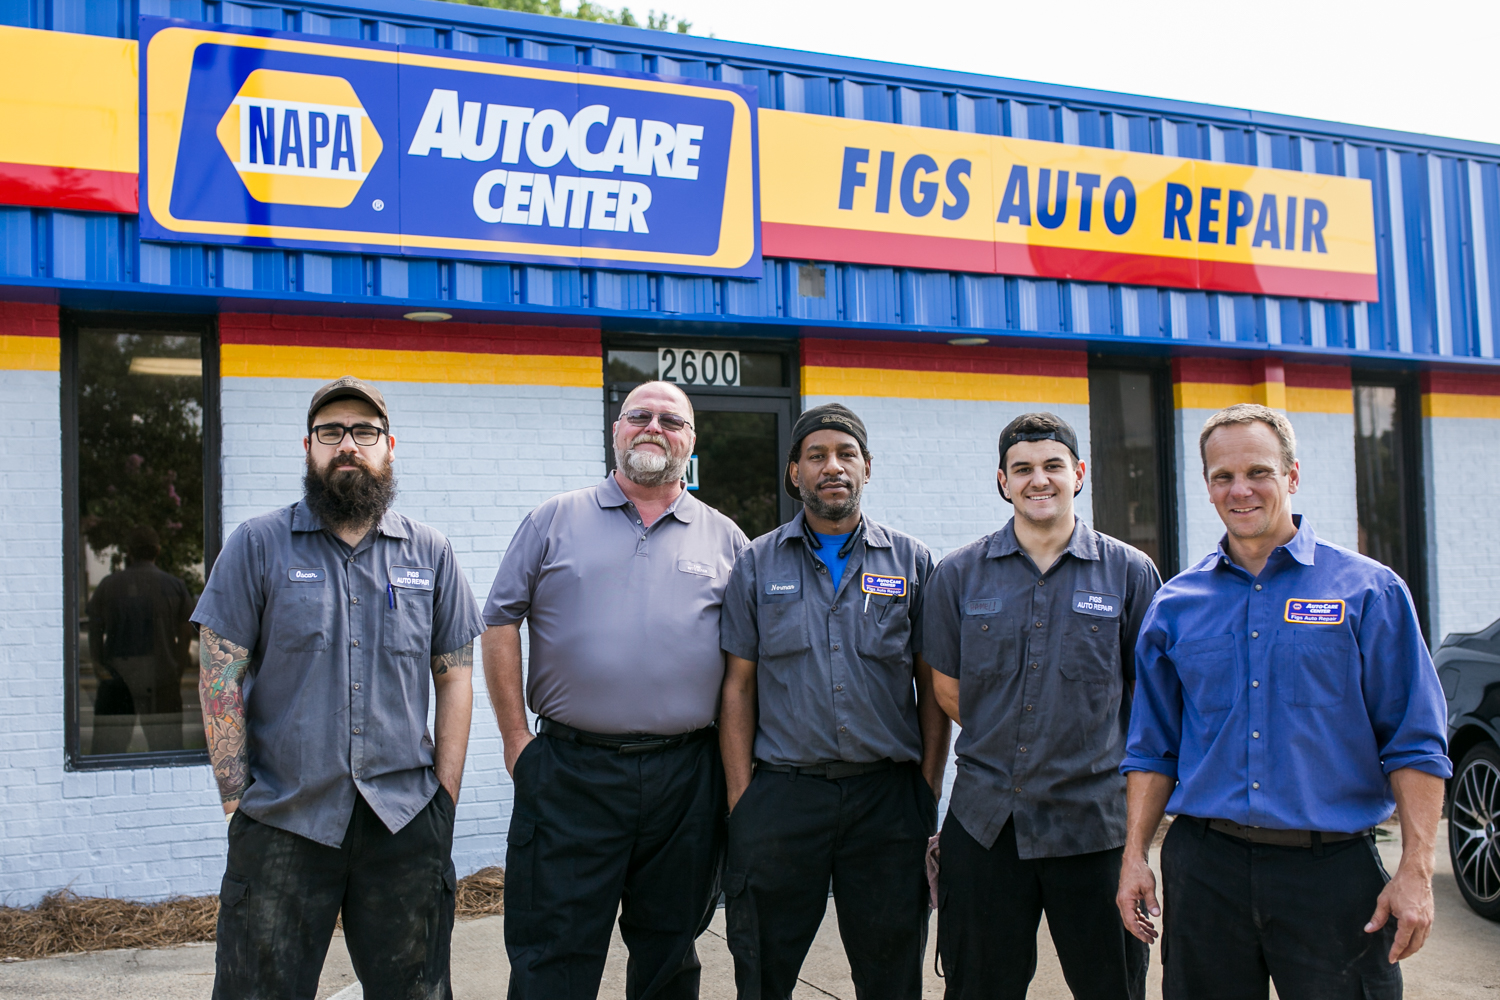 Sofa Repair Charlotte Nc Figs Auto Repair In Charlotte Nc North Carolina Car Repair